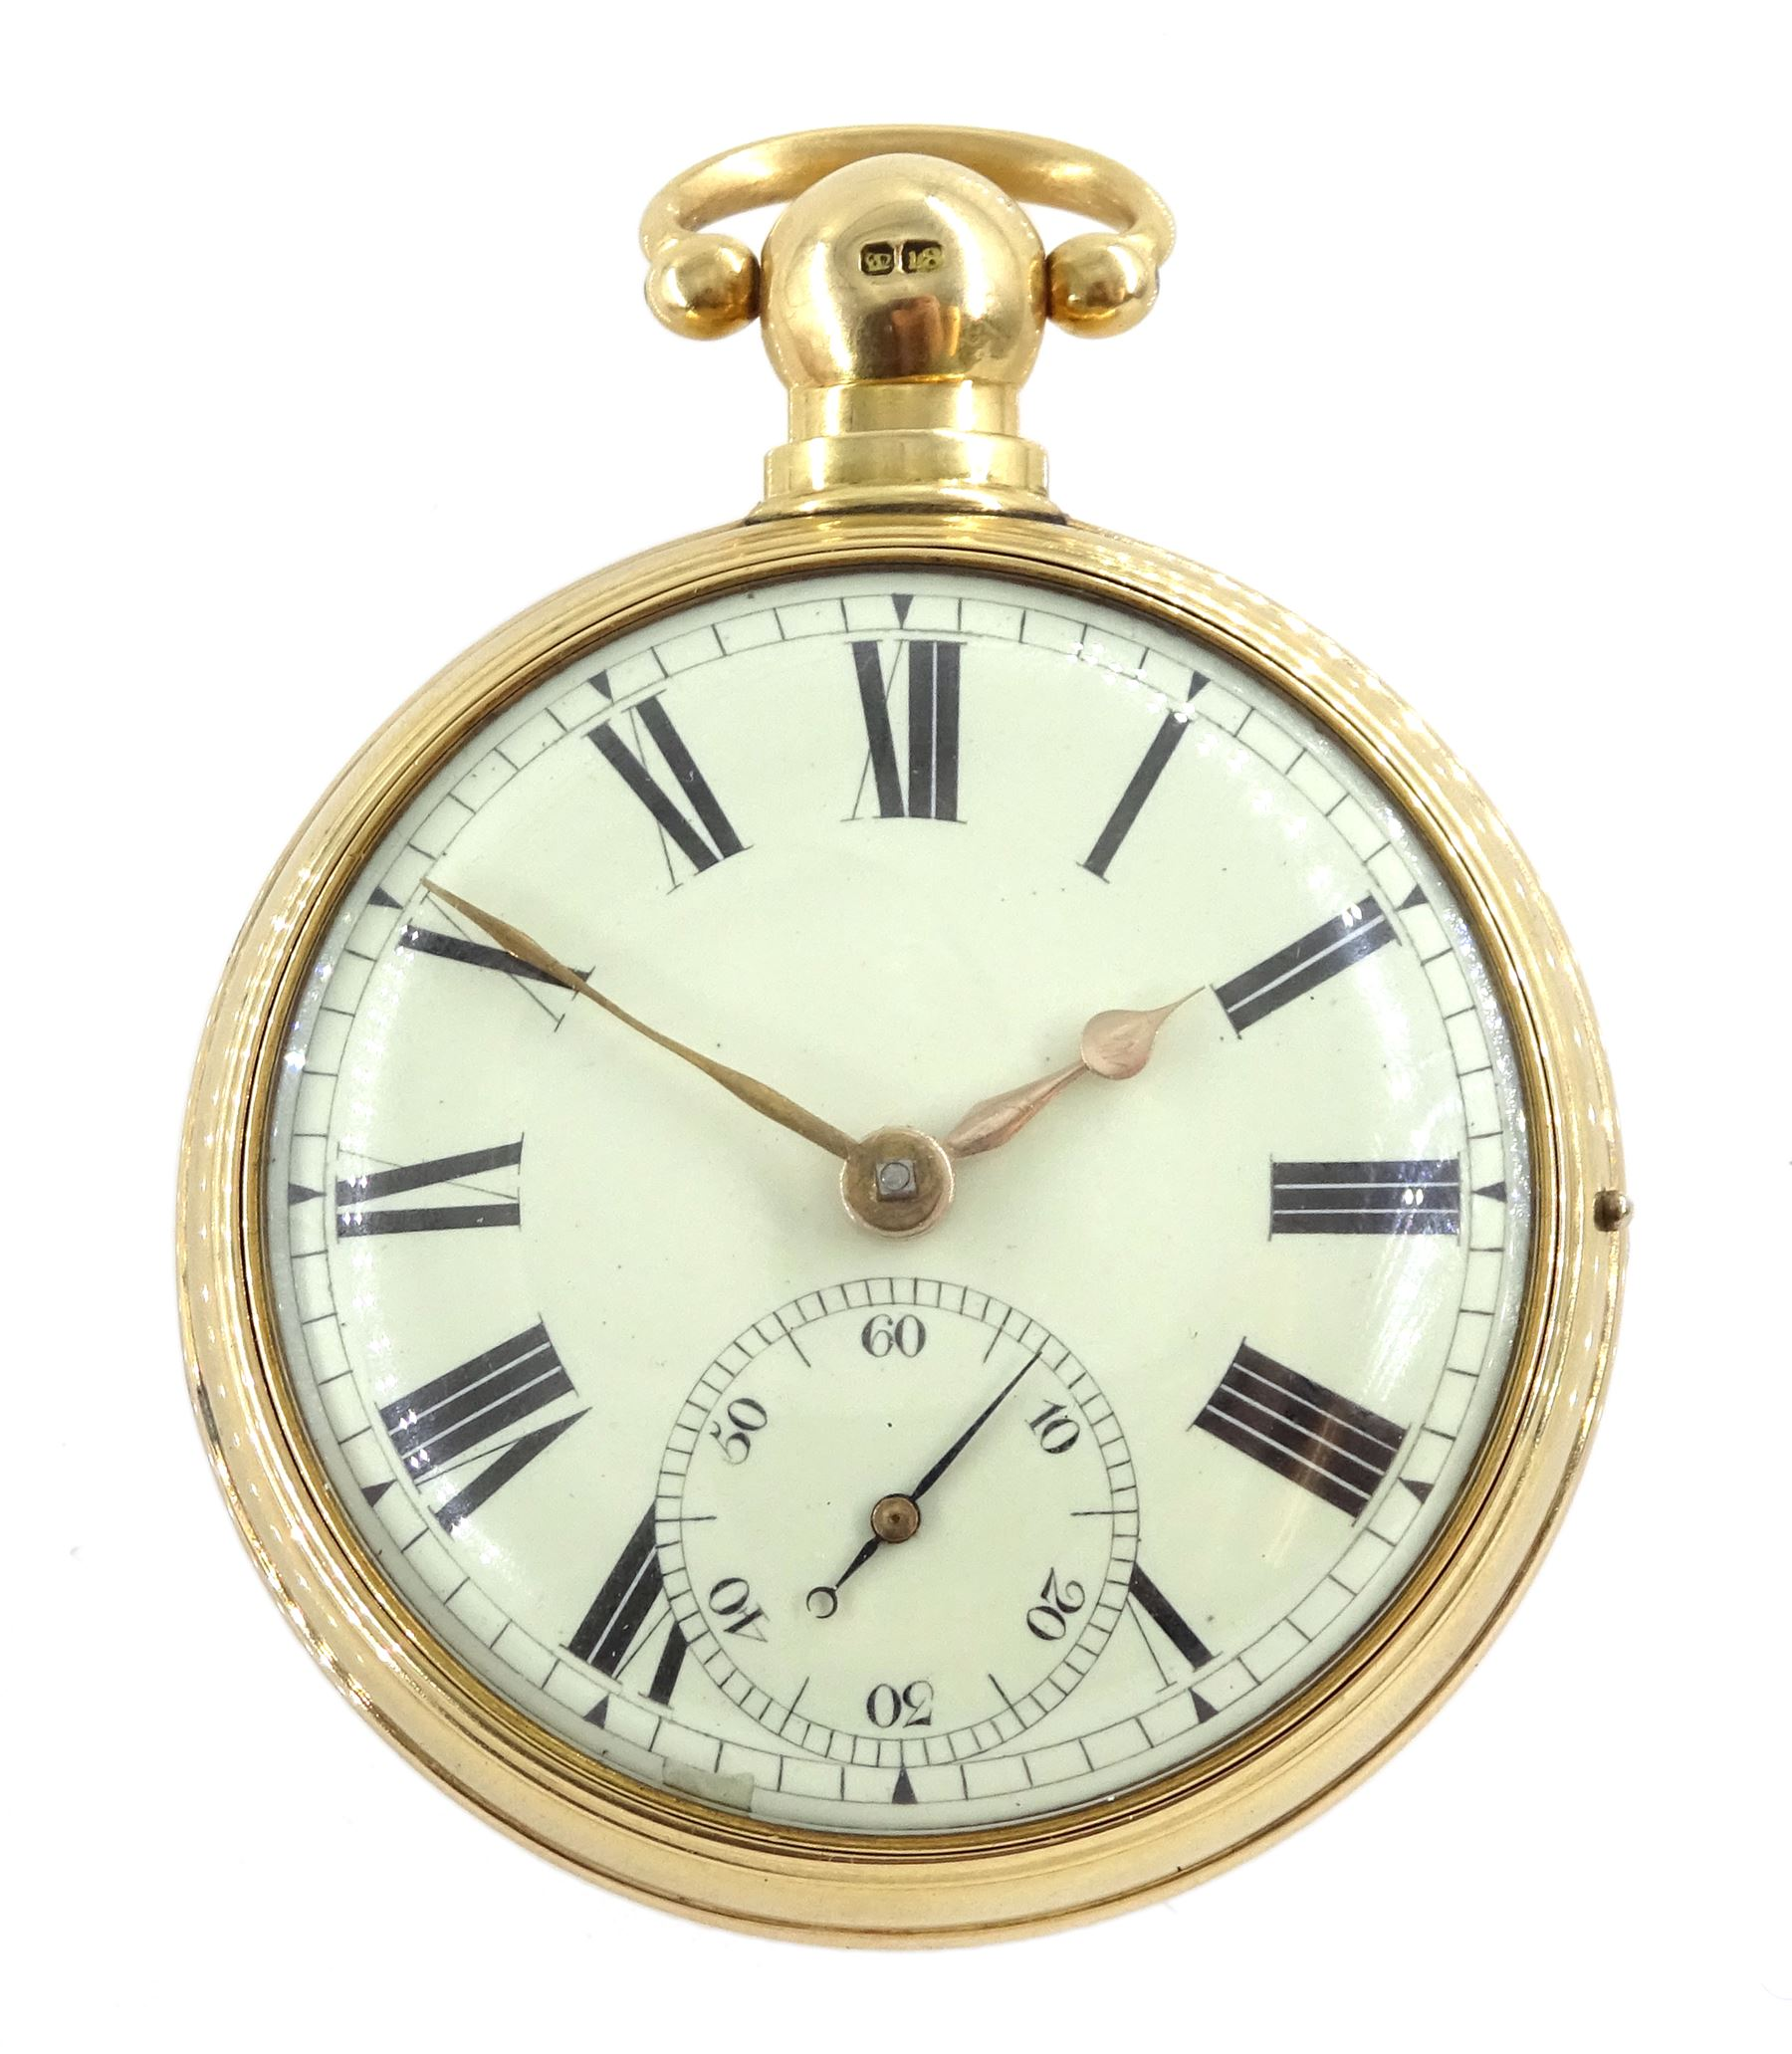 George III 18ct gold pair cased English lever fusee pocket watch by John Bolton